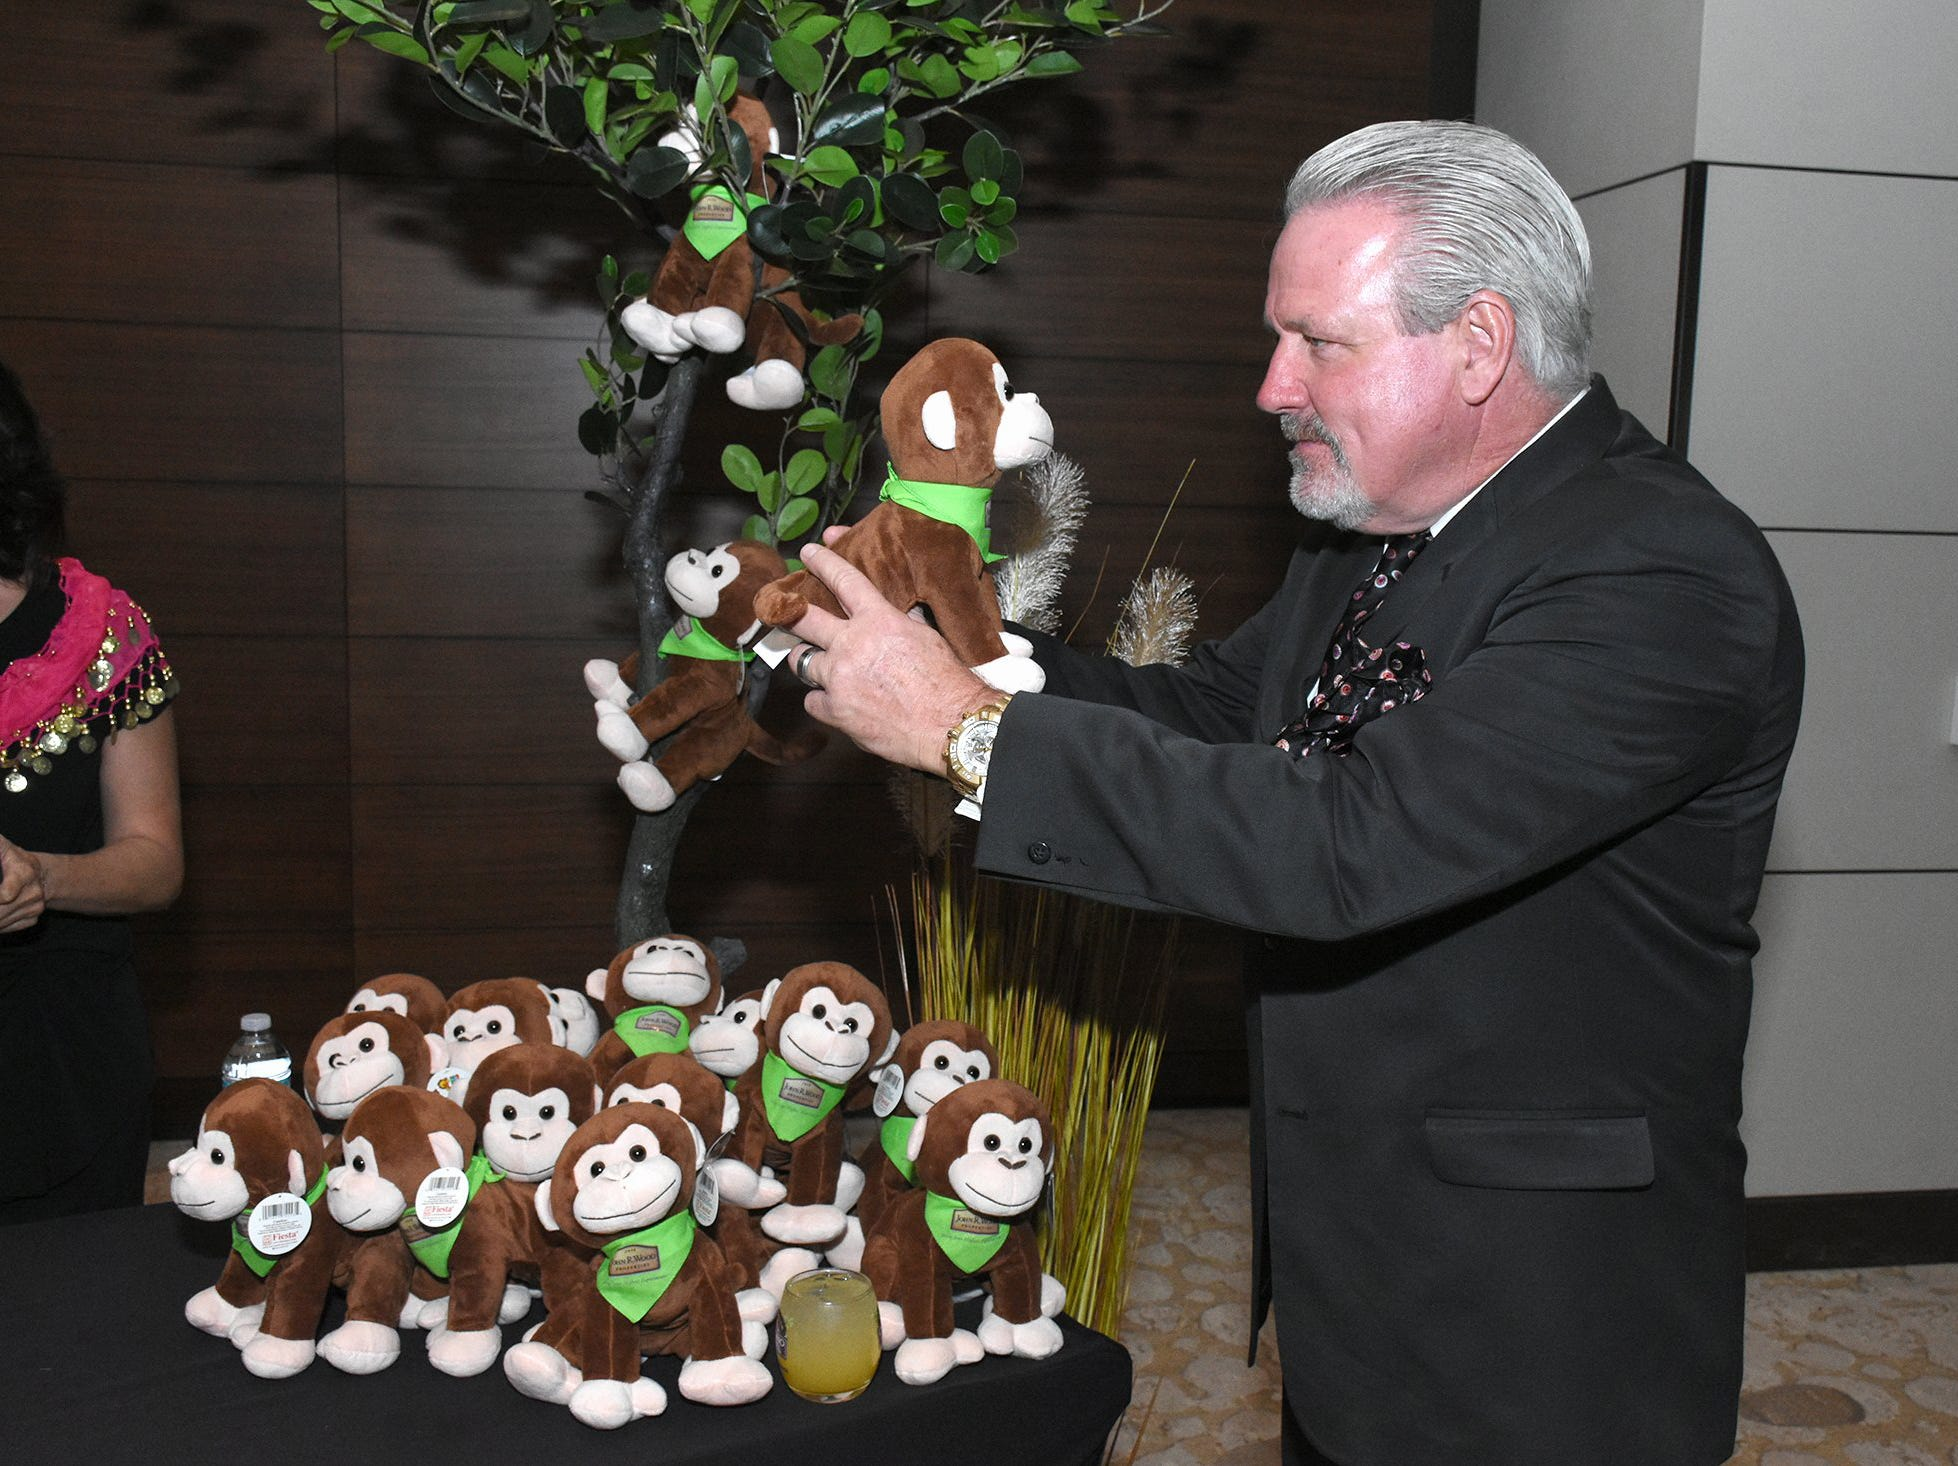 Jimmy Downey shares a moment with huggable animals whose purchase went to hospitalized children. The Marco Island unit of the American Cancer Society held the Imagination Ball Friday evening at the JW Marriott hotel, raising funds to continue the fight against cancer.